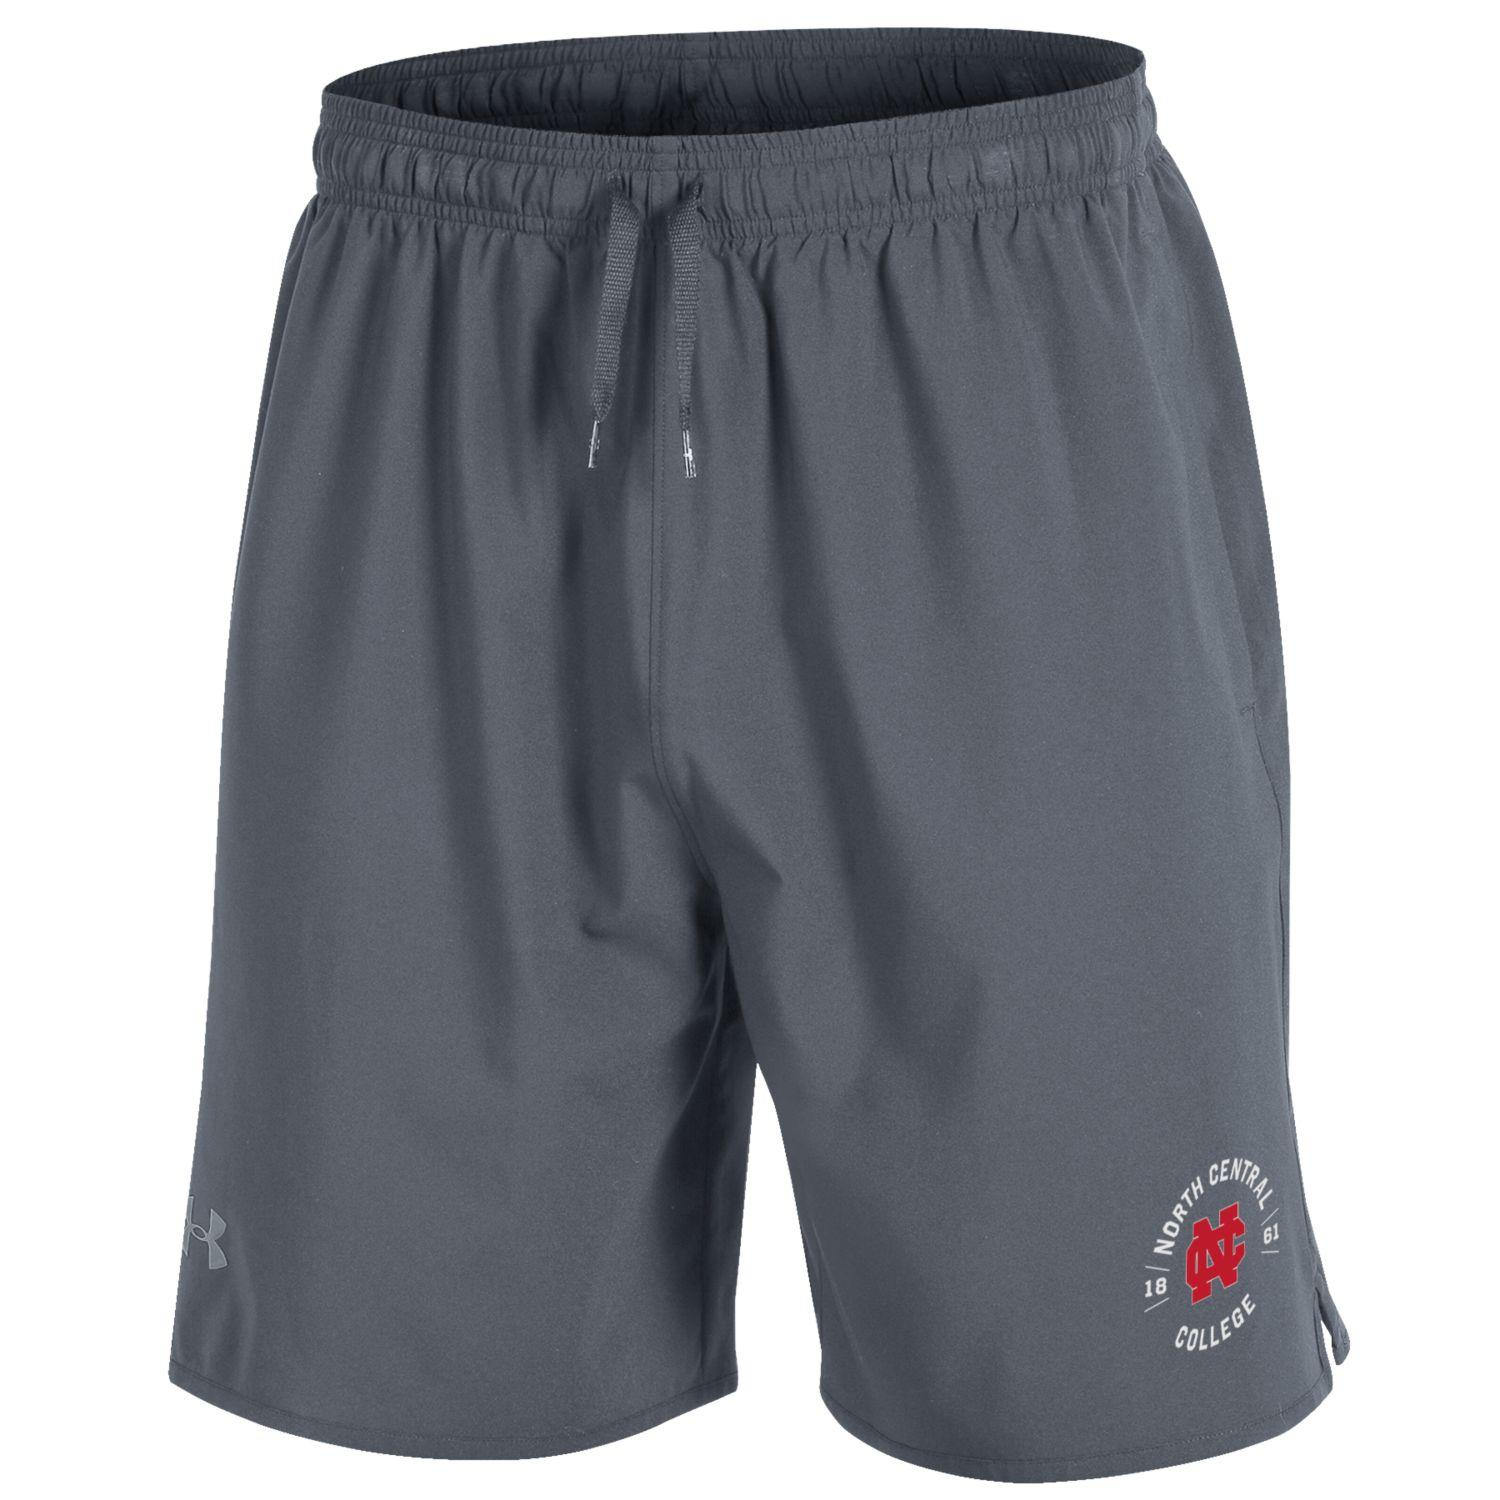 Alternative Image for the Qualifier Woven Short by Under Armour product